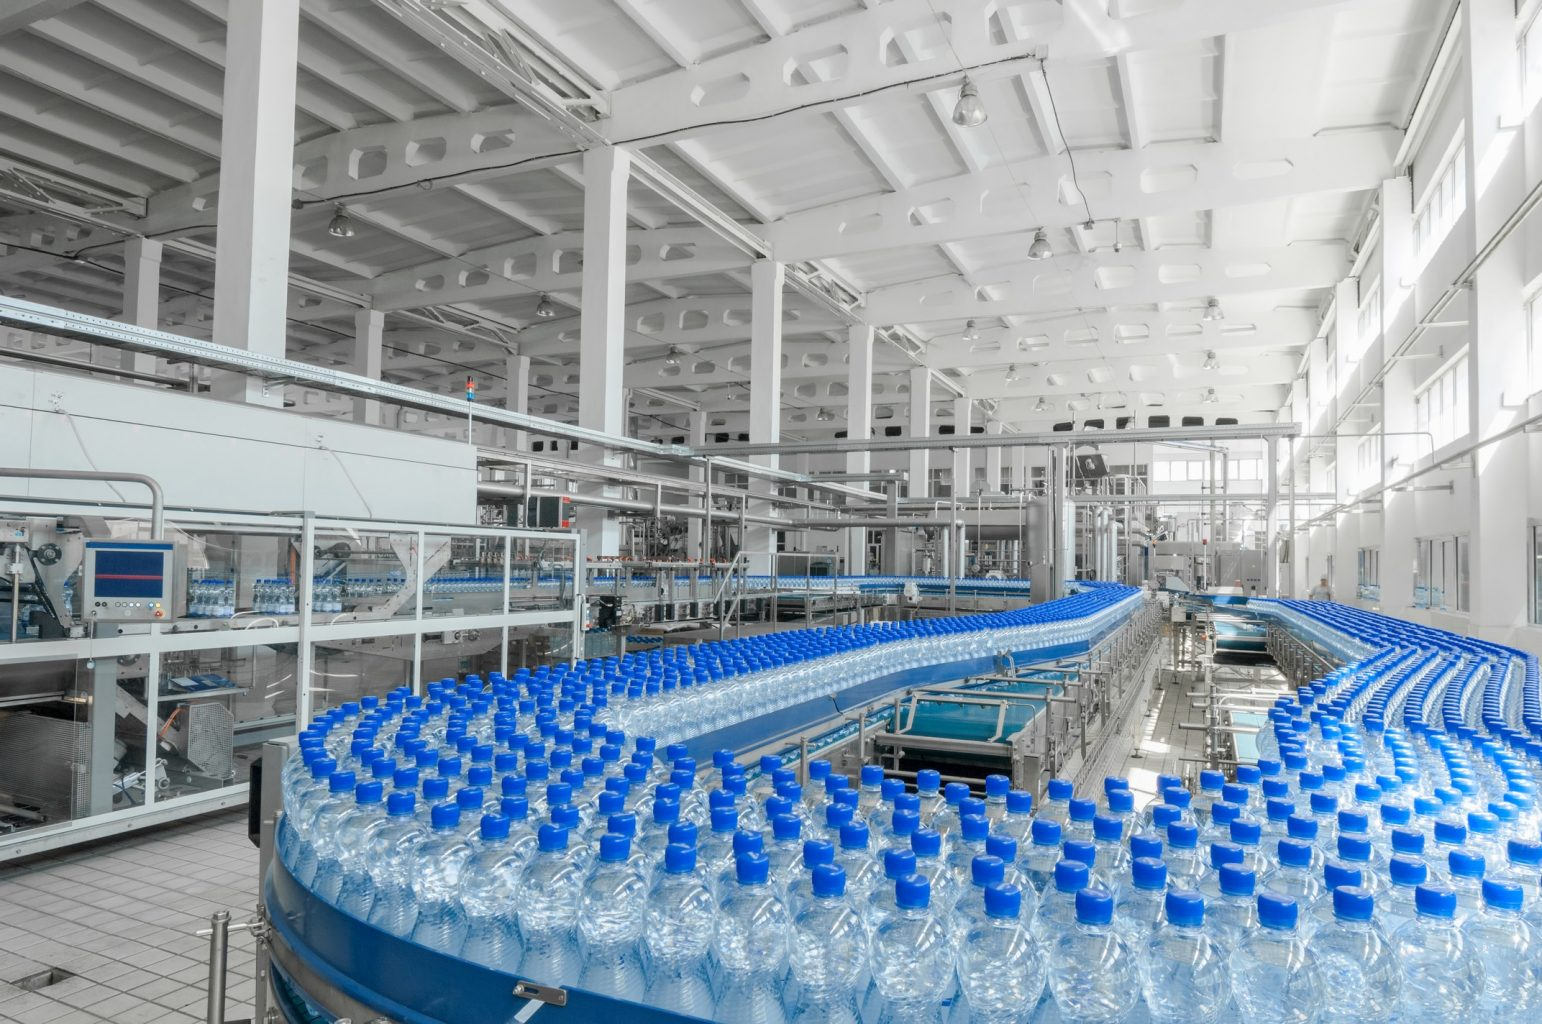 bottled water options in greenville, spartanburg and anderson, south carolina